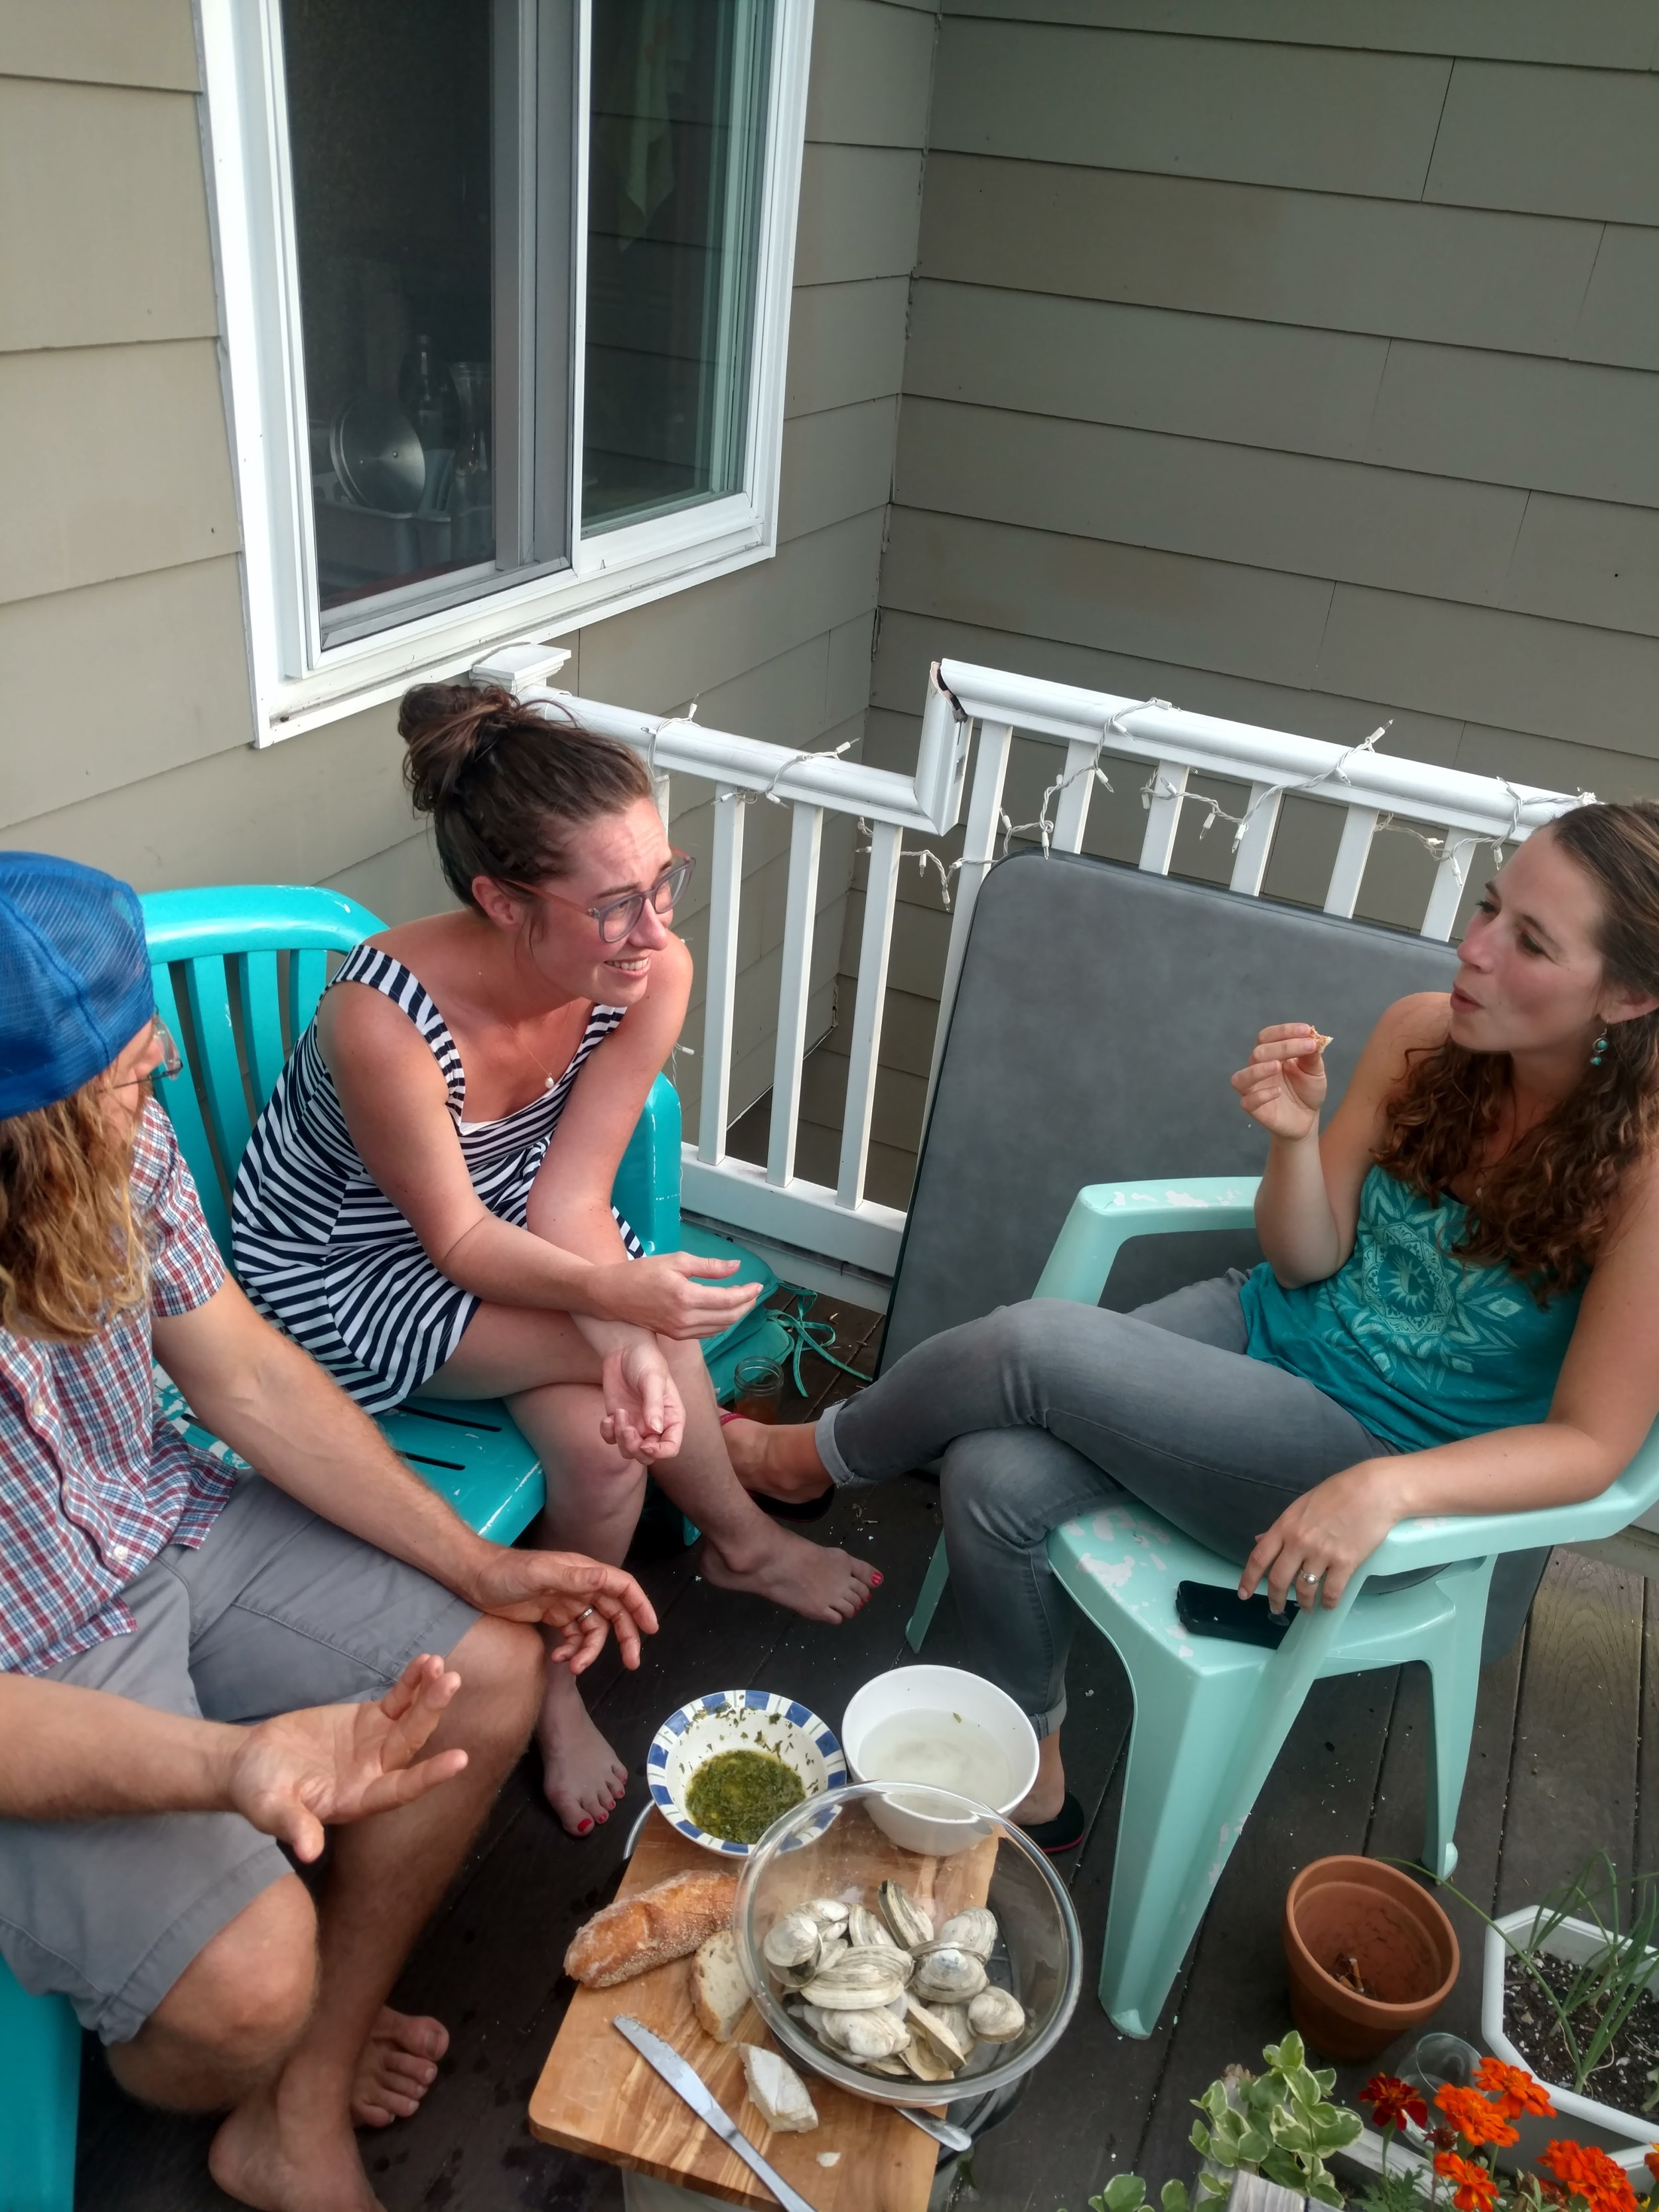 Friday night crew enjoying steamers out on the porch